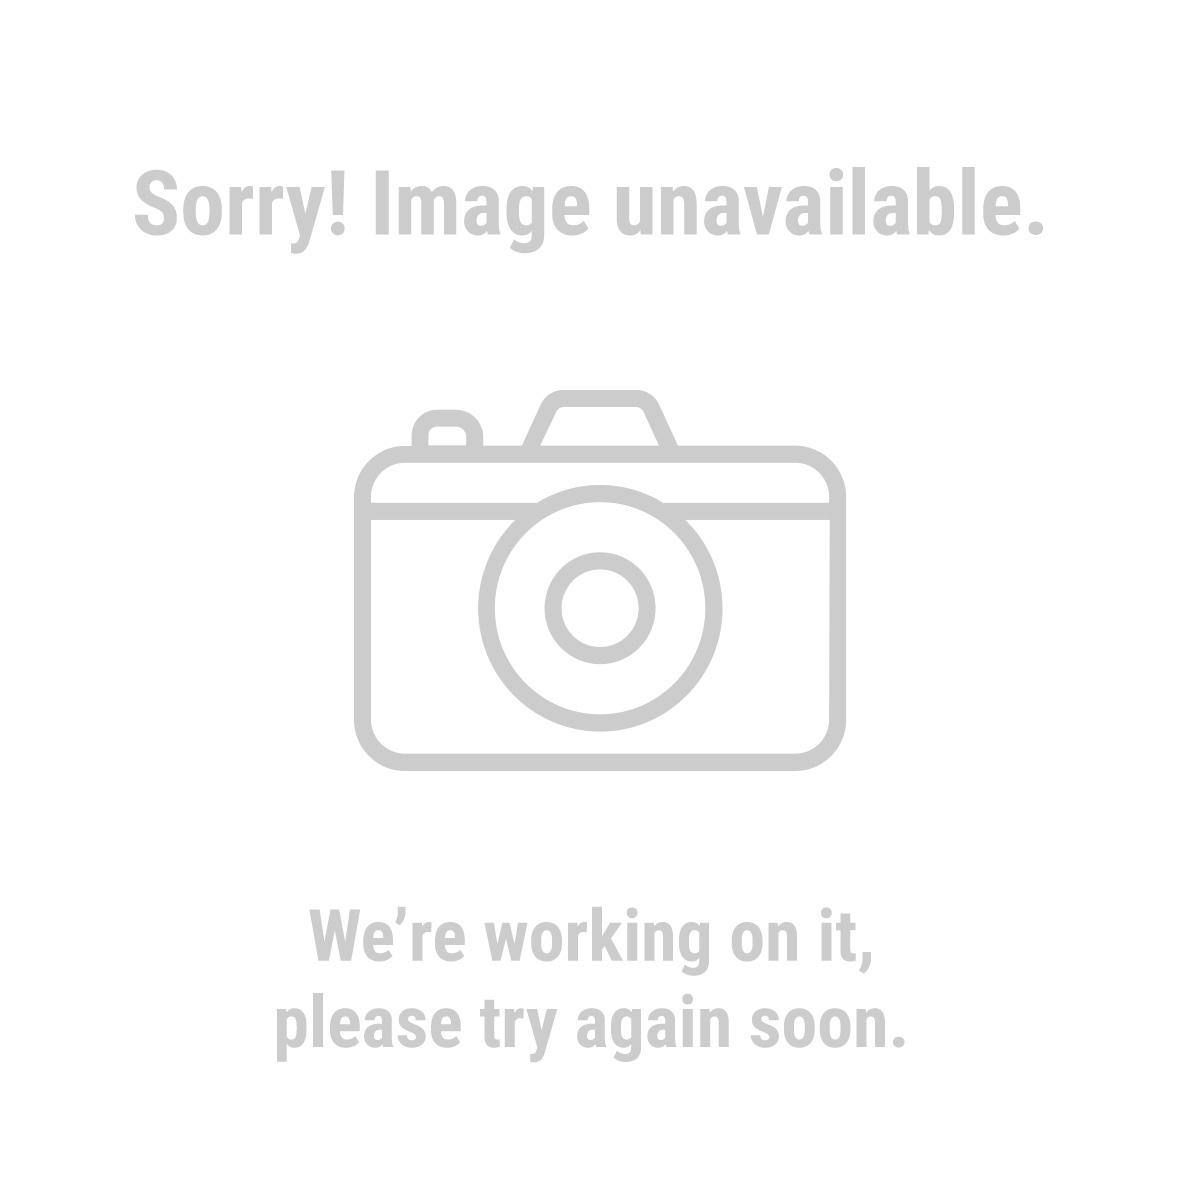 Storehouse 67592 200 Piece Self-Drilling Screw Assortment